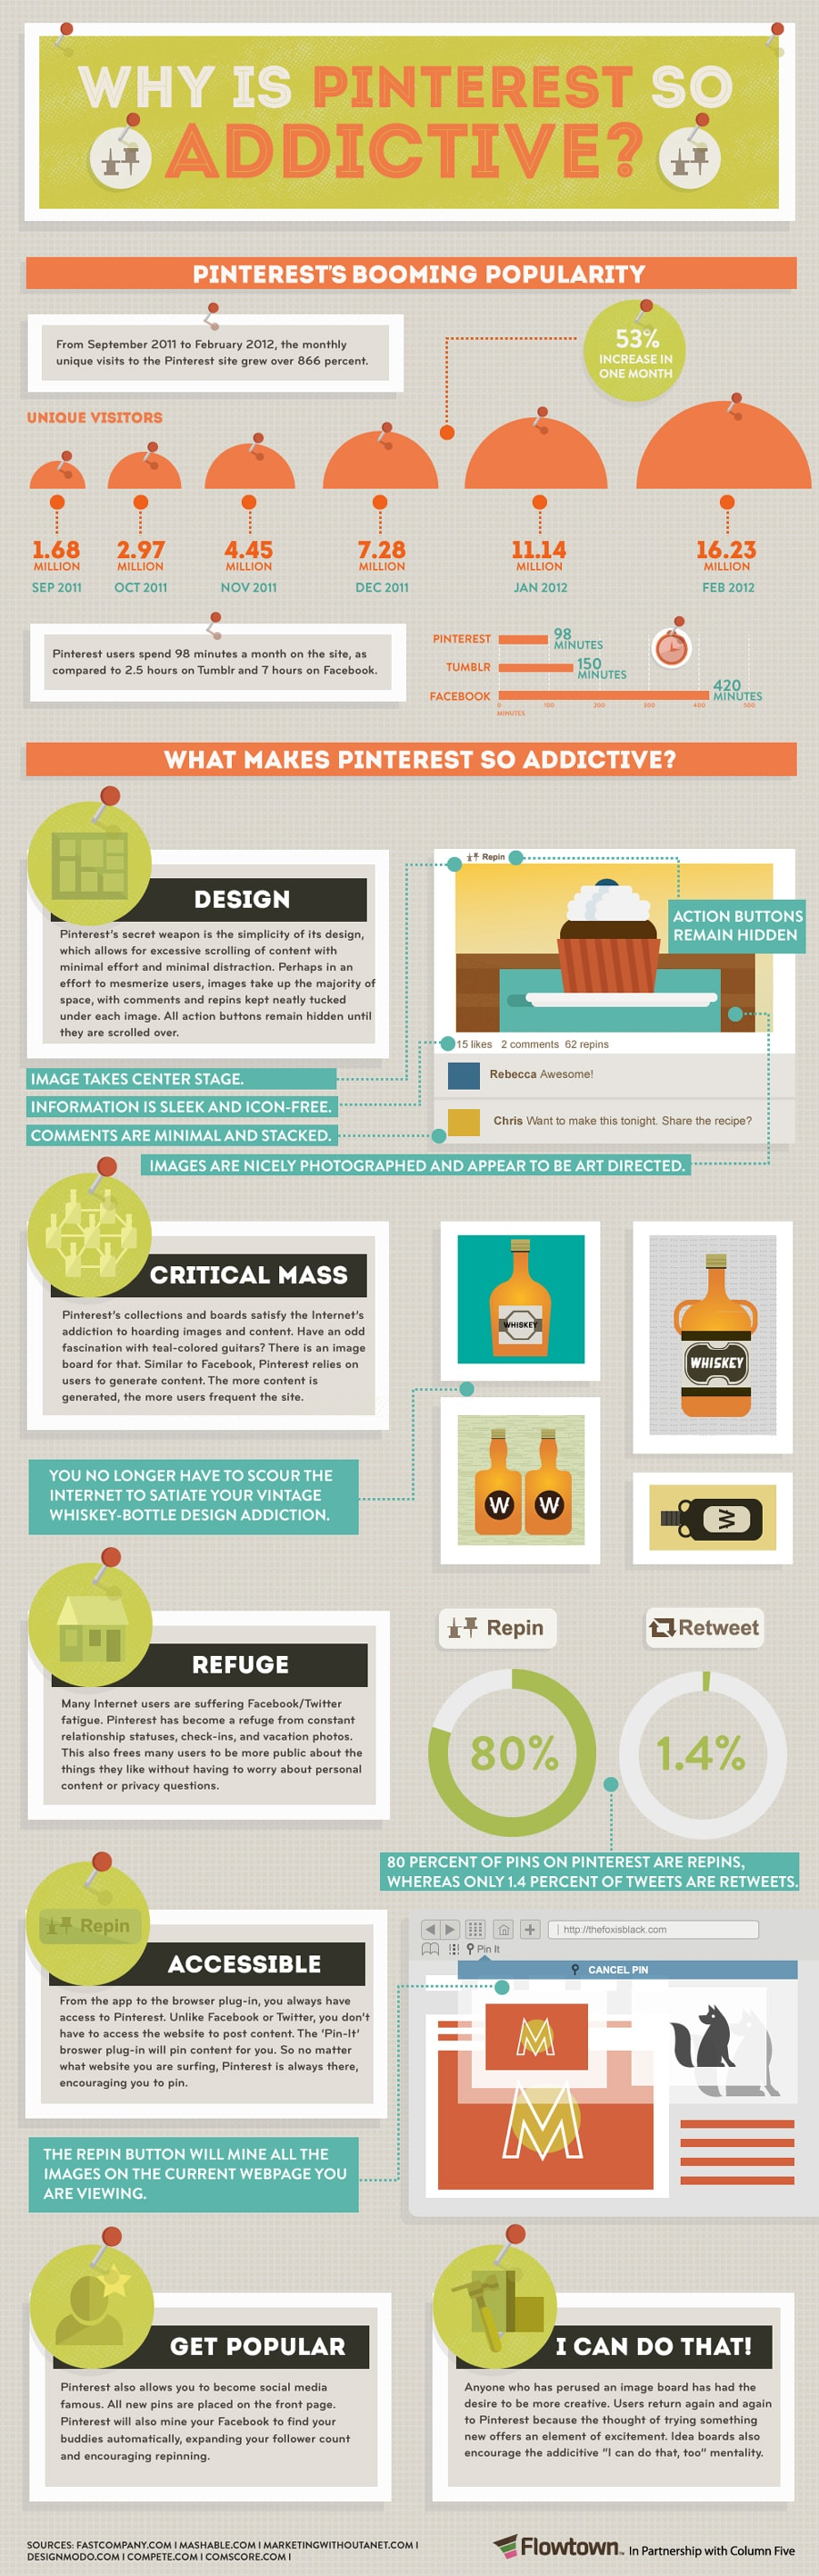 Why Pinterest Is So Addictive [Infographic]